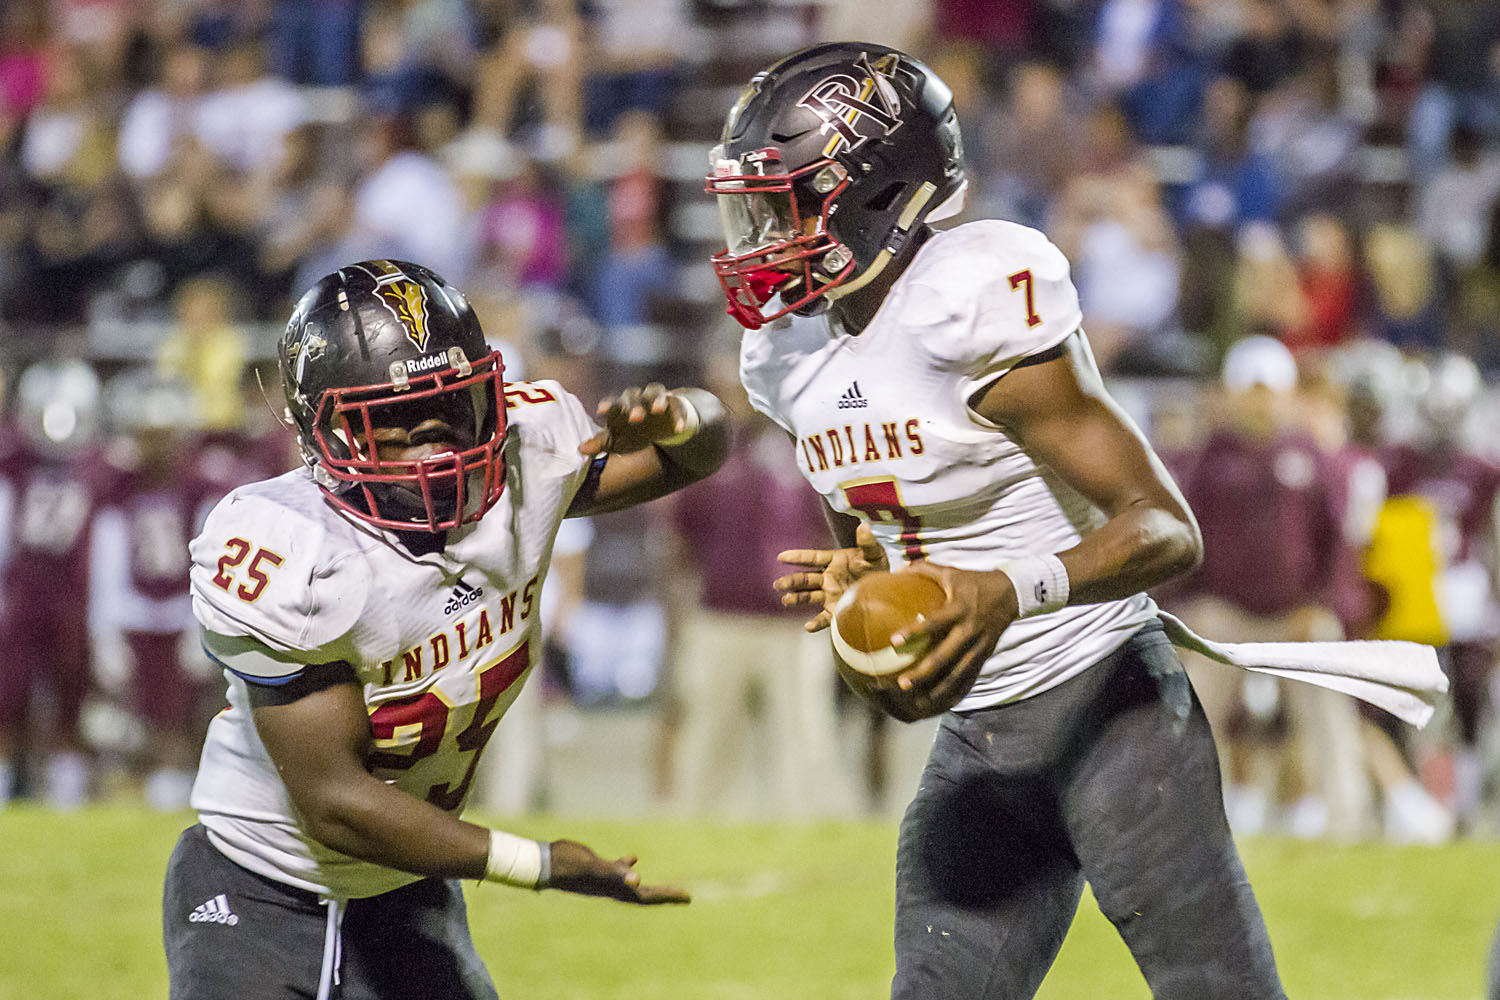 Cougars face another Top 10 team on road in Park Crossing